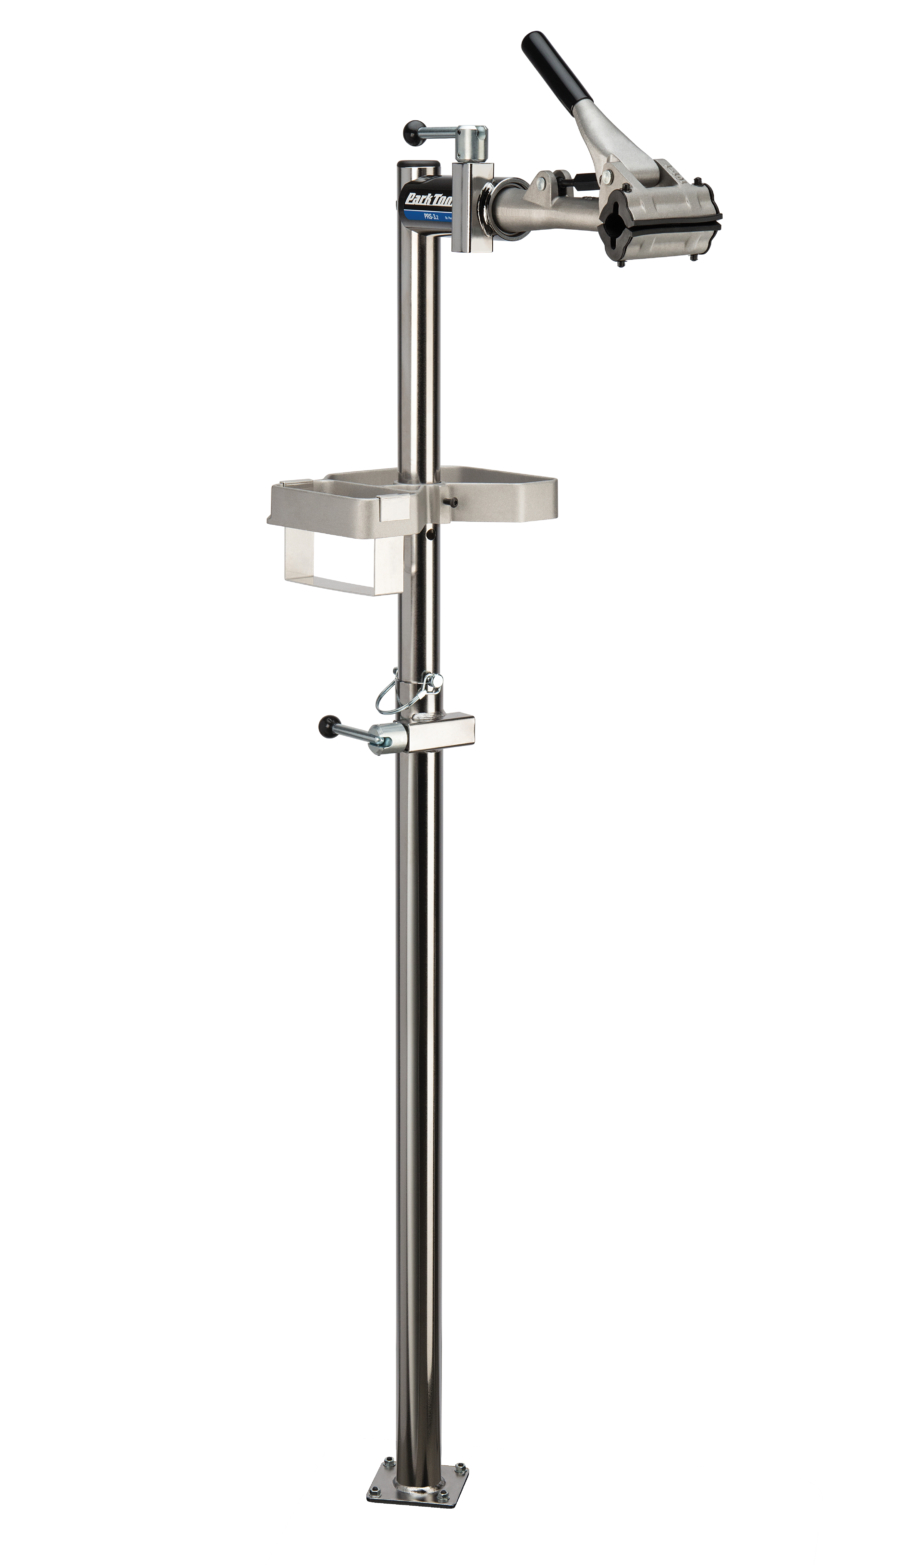 The Park Tool PRS-3.2-1 Deluxe Single Arm Repair Stand without base, enlarged